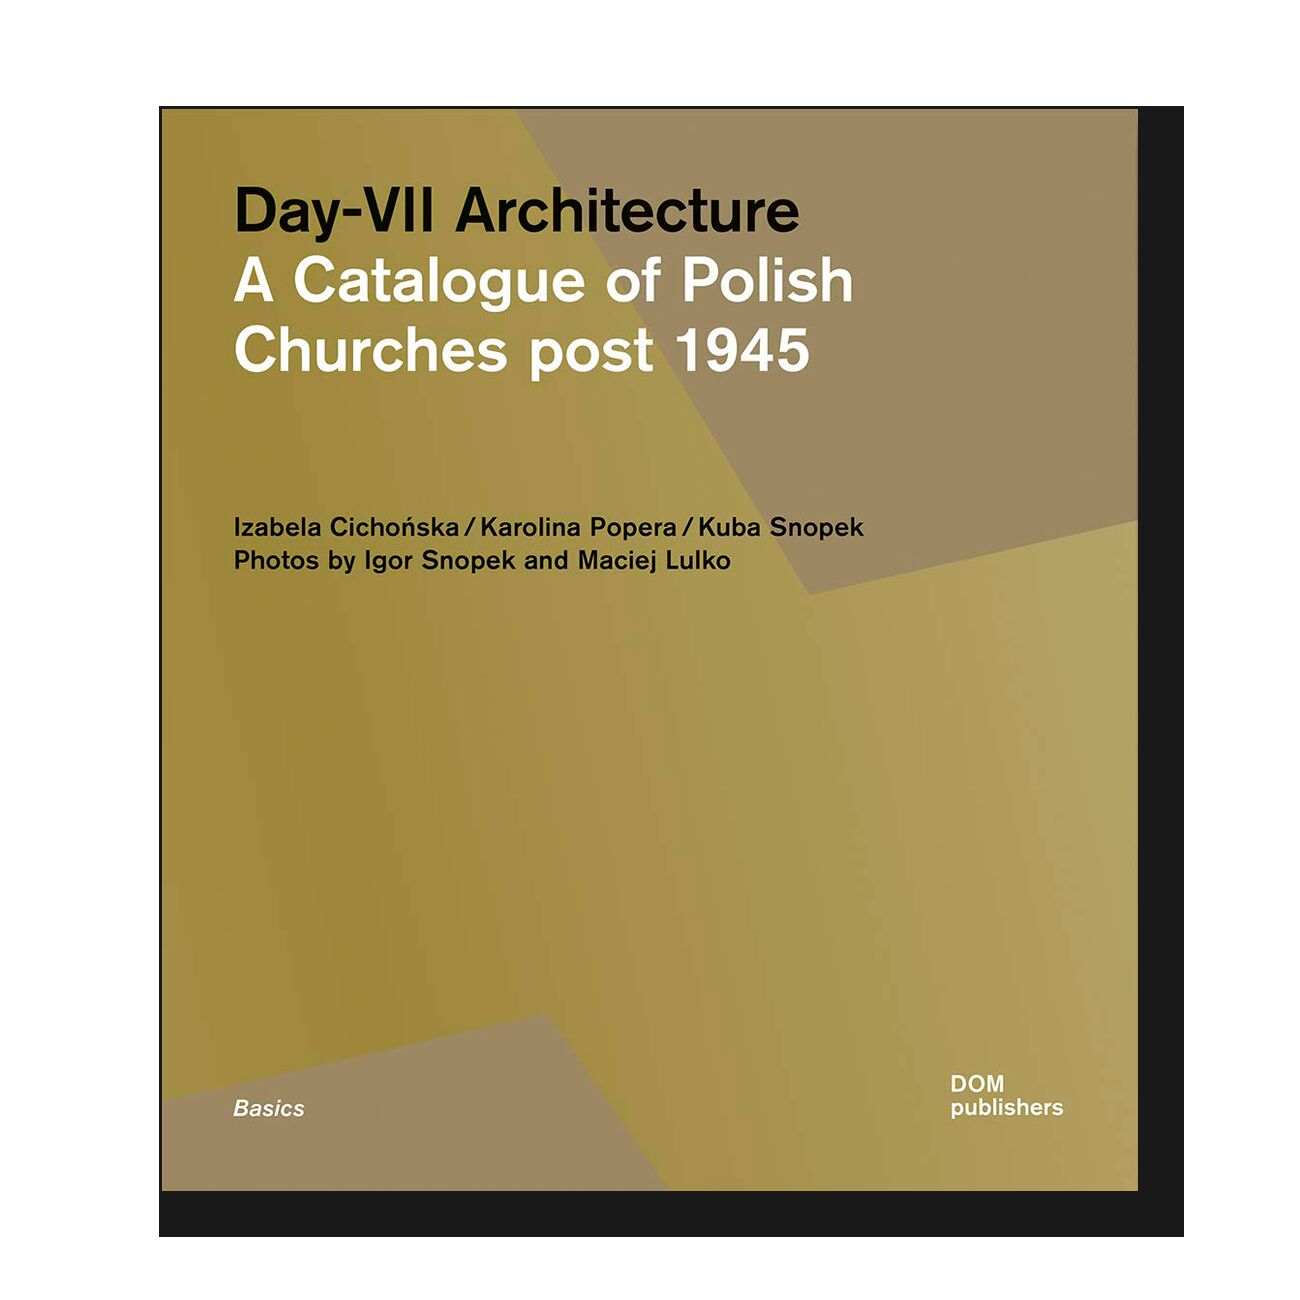 Day-VII Architecture: A Catalogue of Polish Churches Post 1945